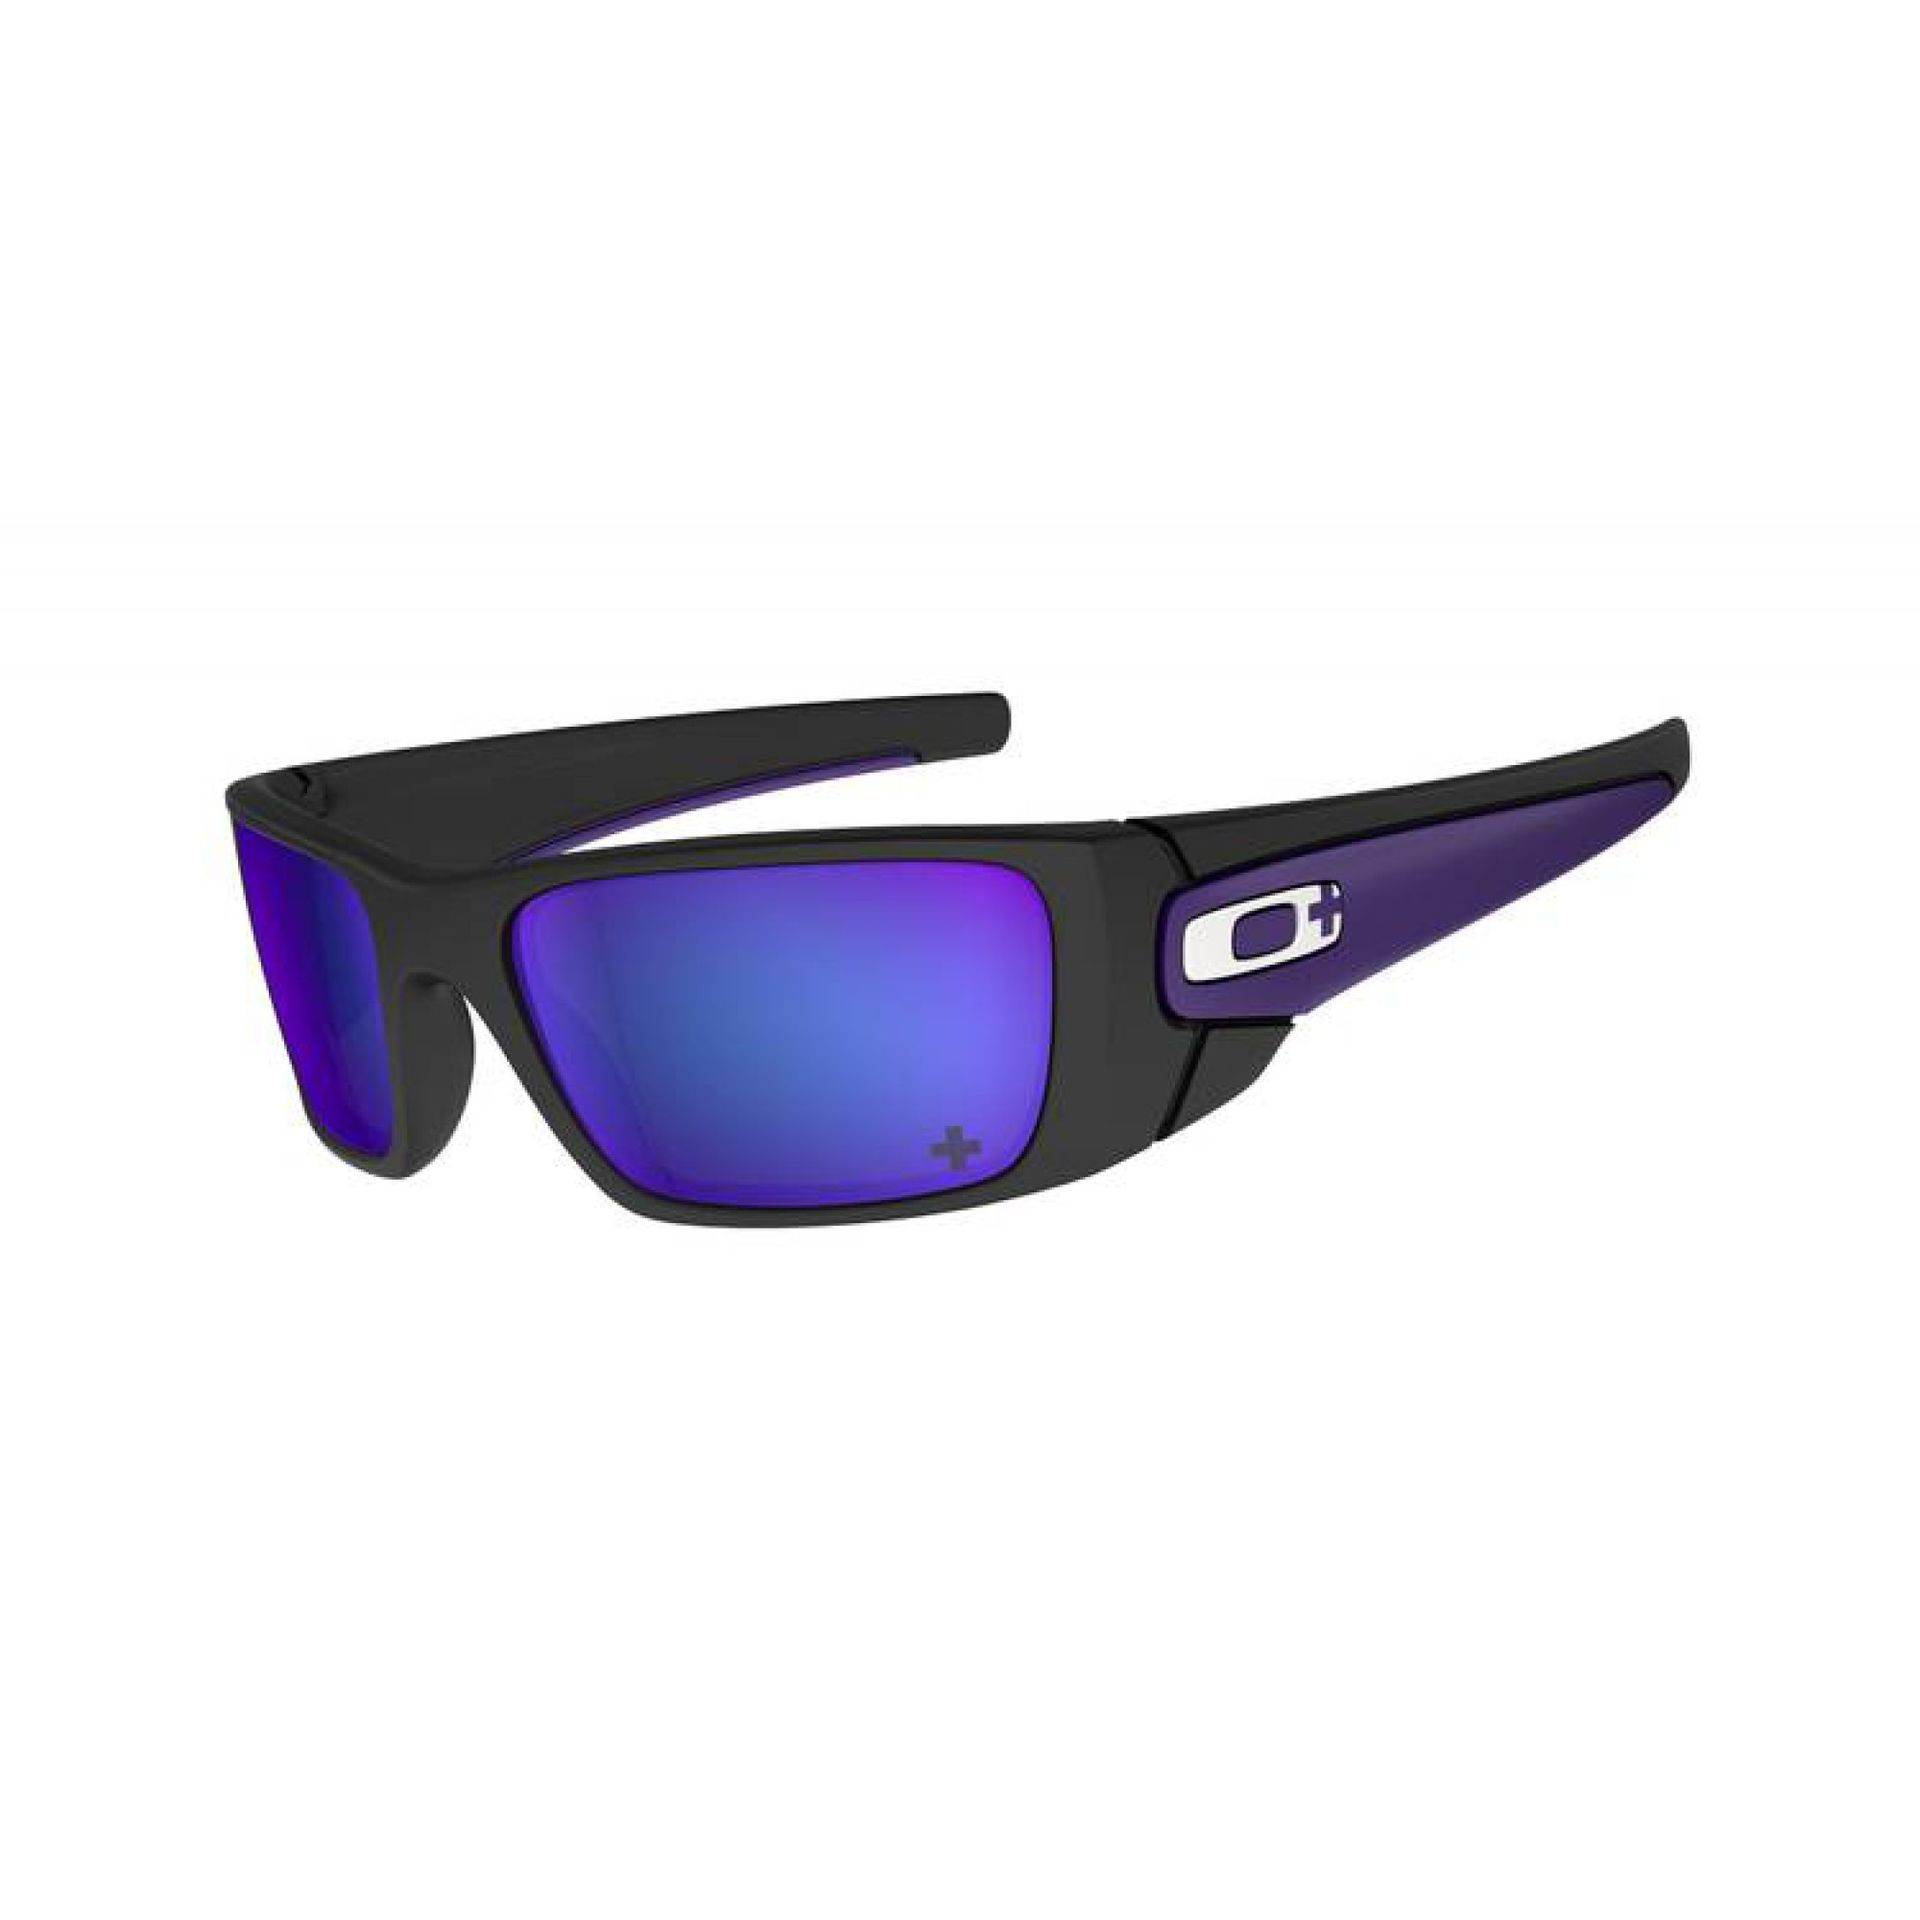 OKULARY OAKLEY INFINITE HERO FUEL CELL